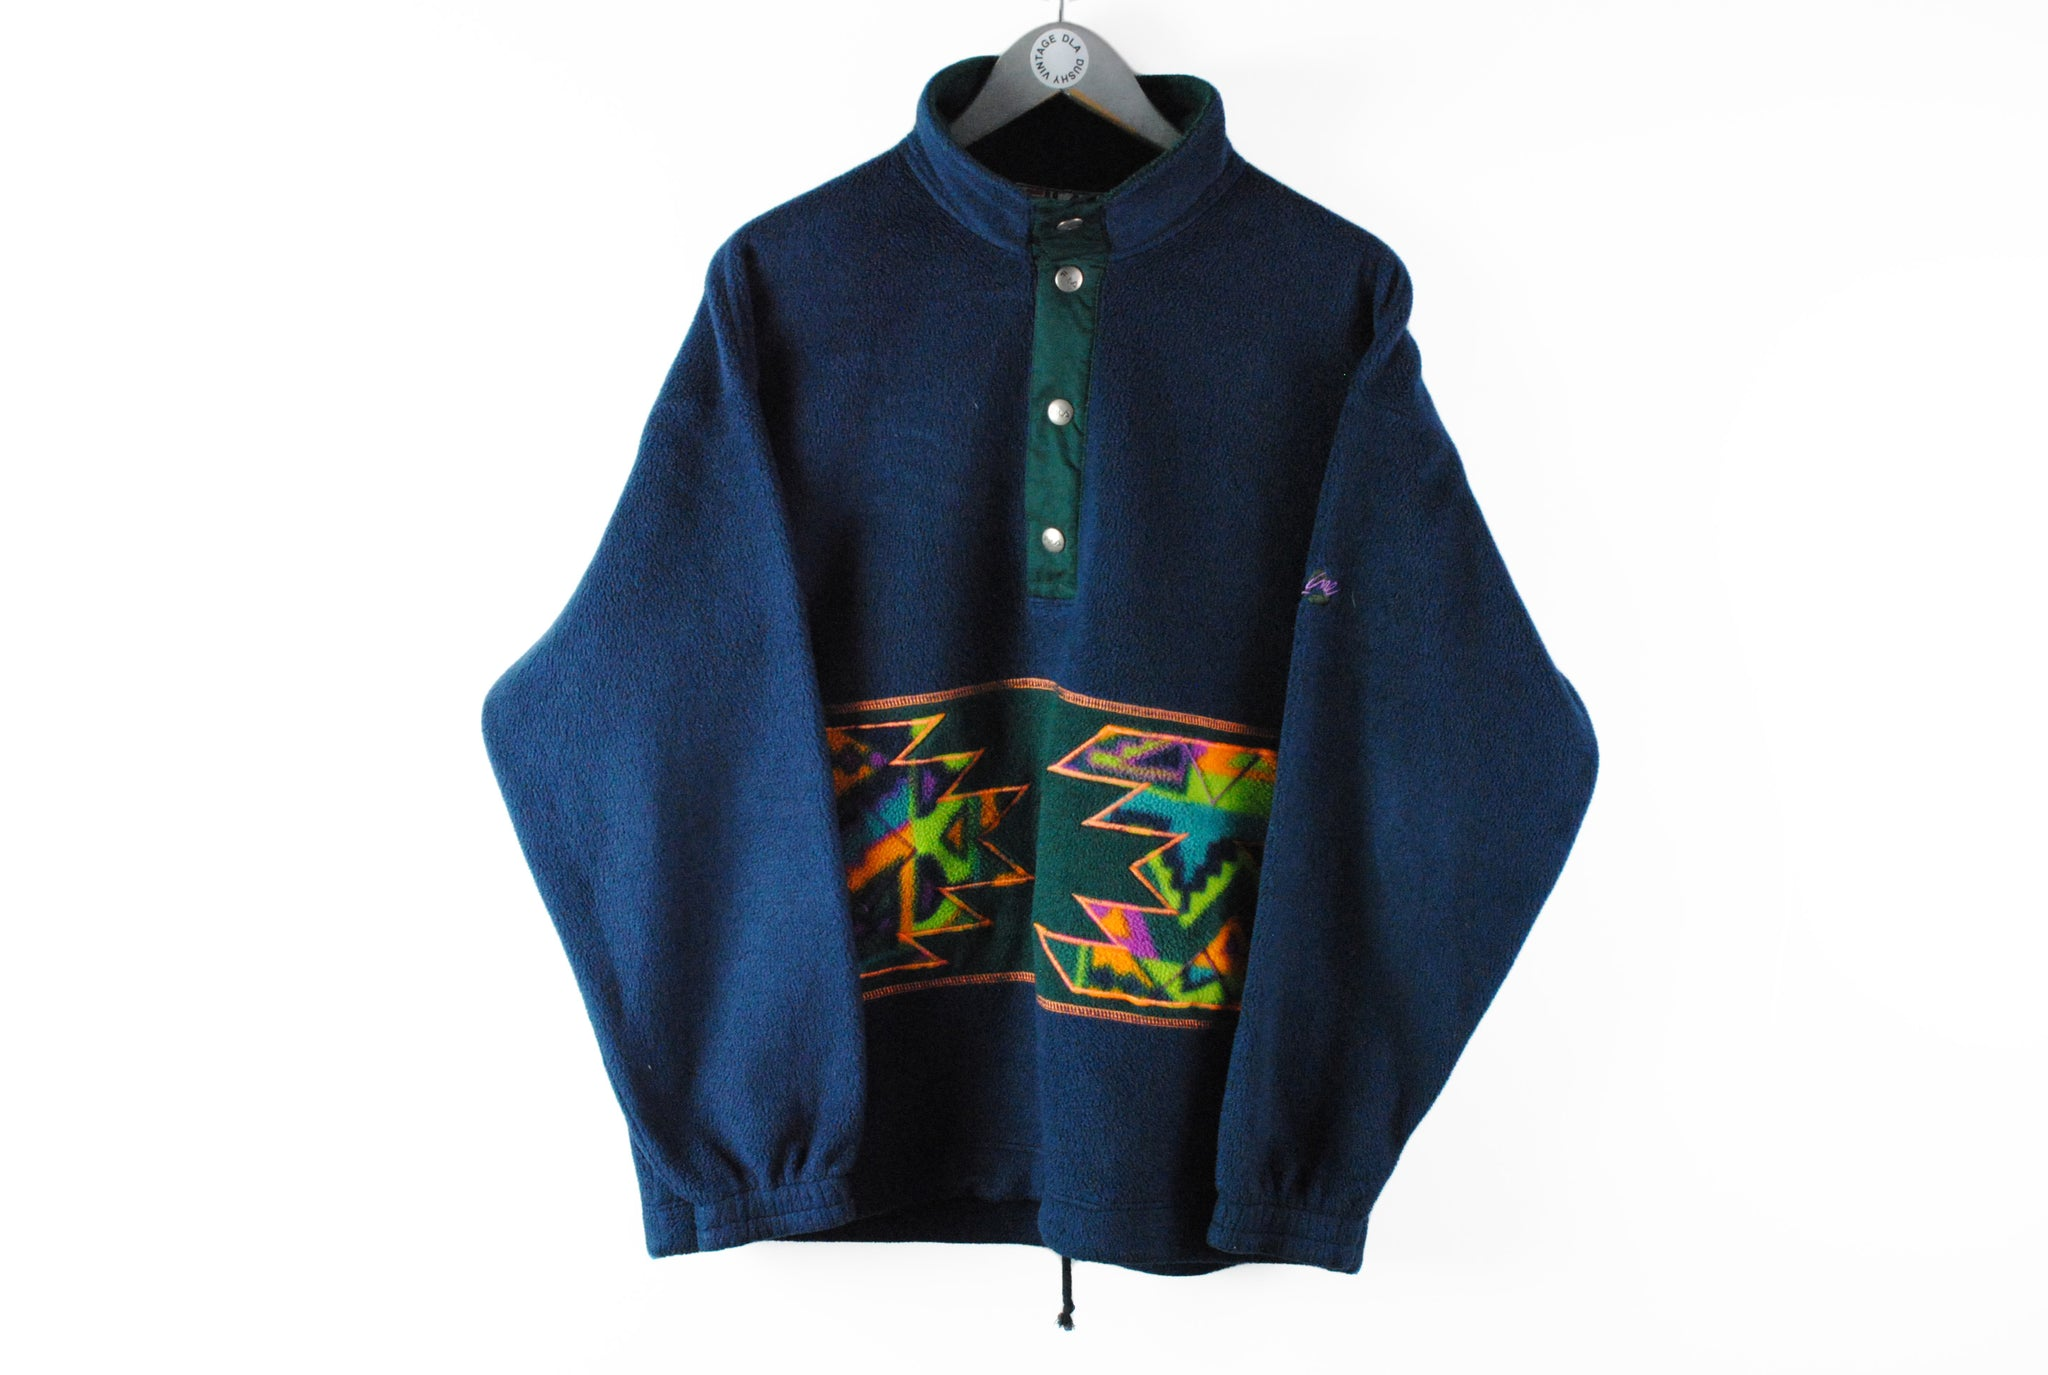 Vintage Fila Magic Line Fleece Medium / Large blue abstract color multicolor 90s outdoor ski sweater